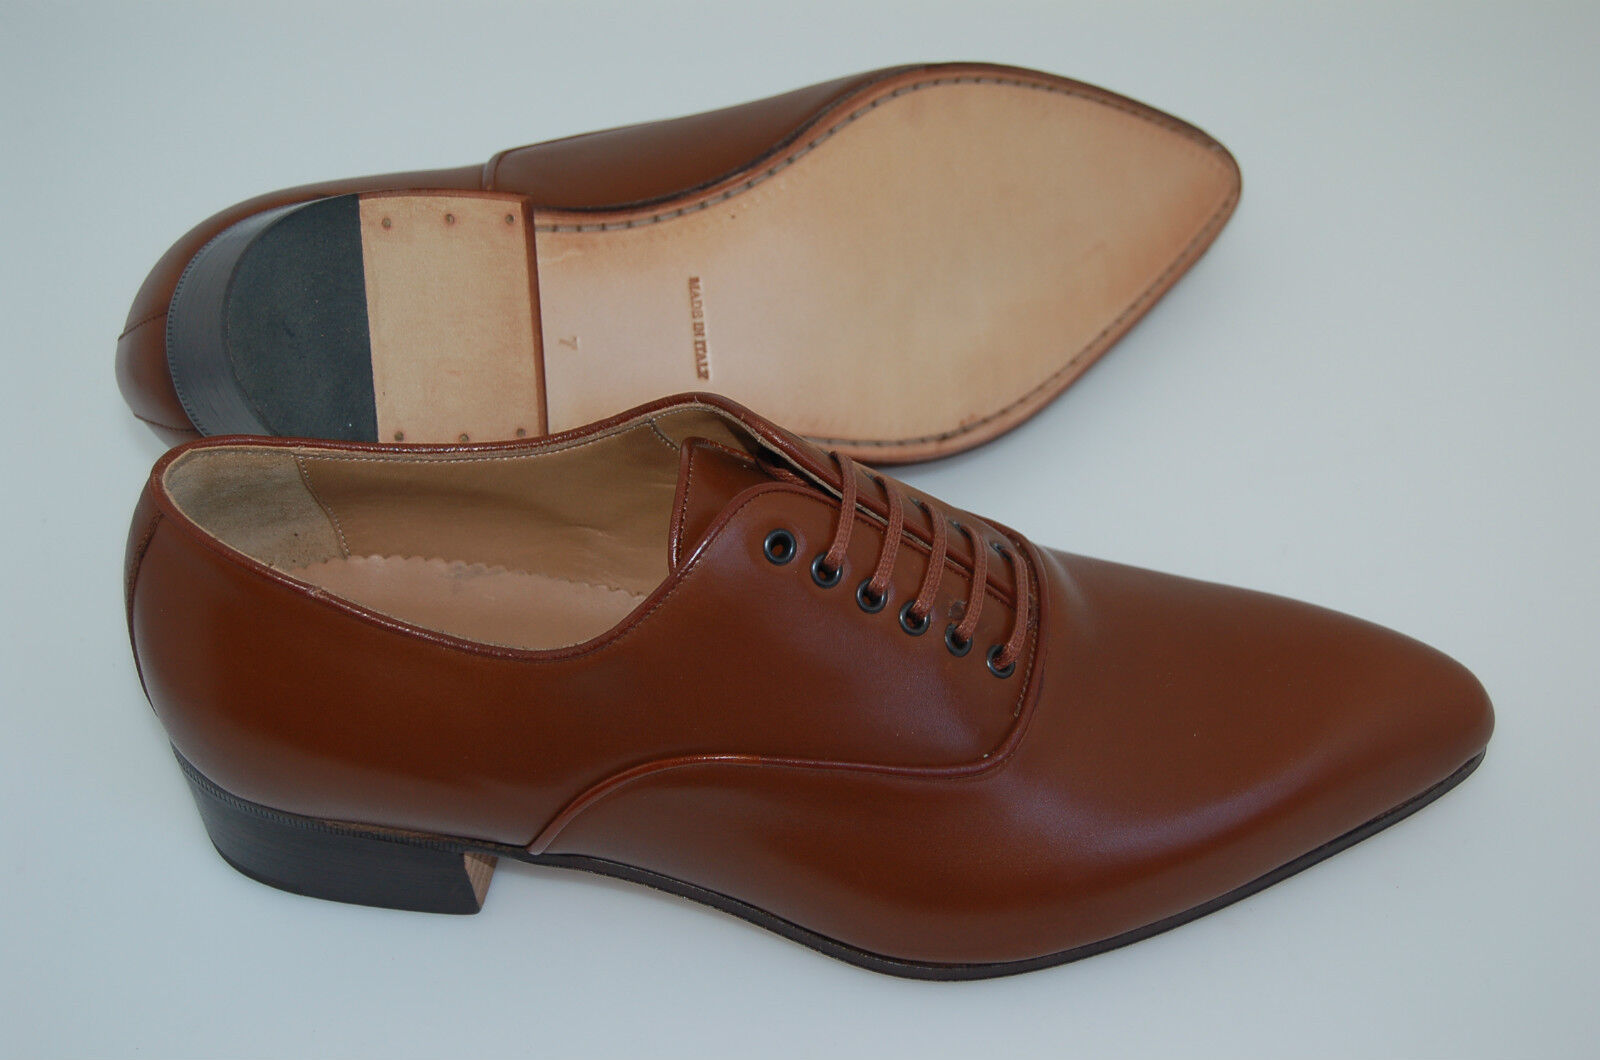 MAN-43-9eu-10us-OXFORD-BRANDY CALF-VITELLO BRANDY-LTH SOLE/SUOLA CUOIO+BLAKE CST